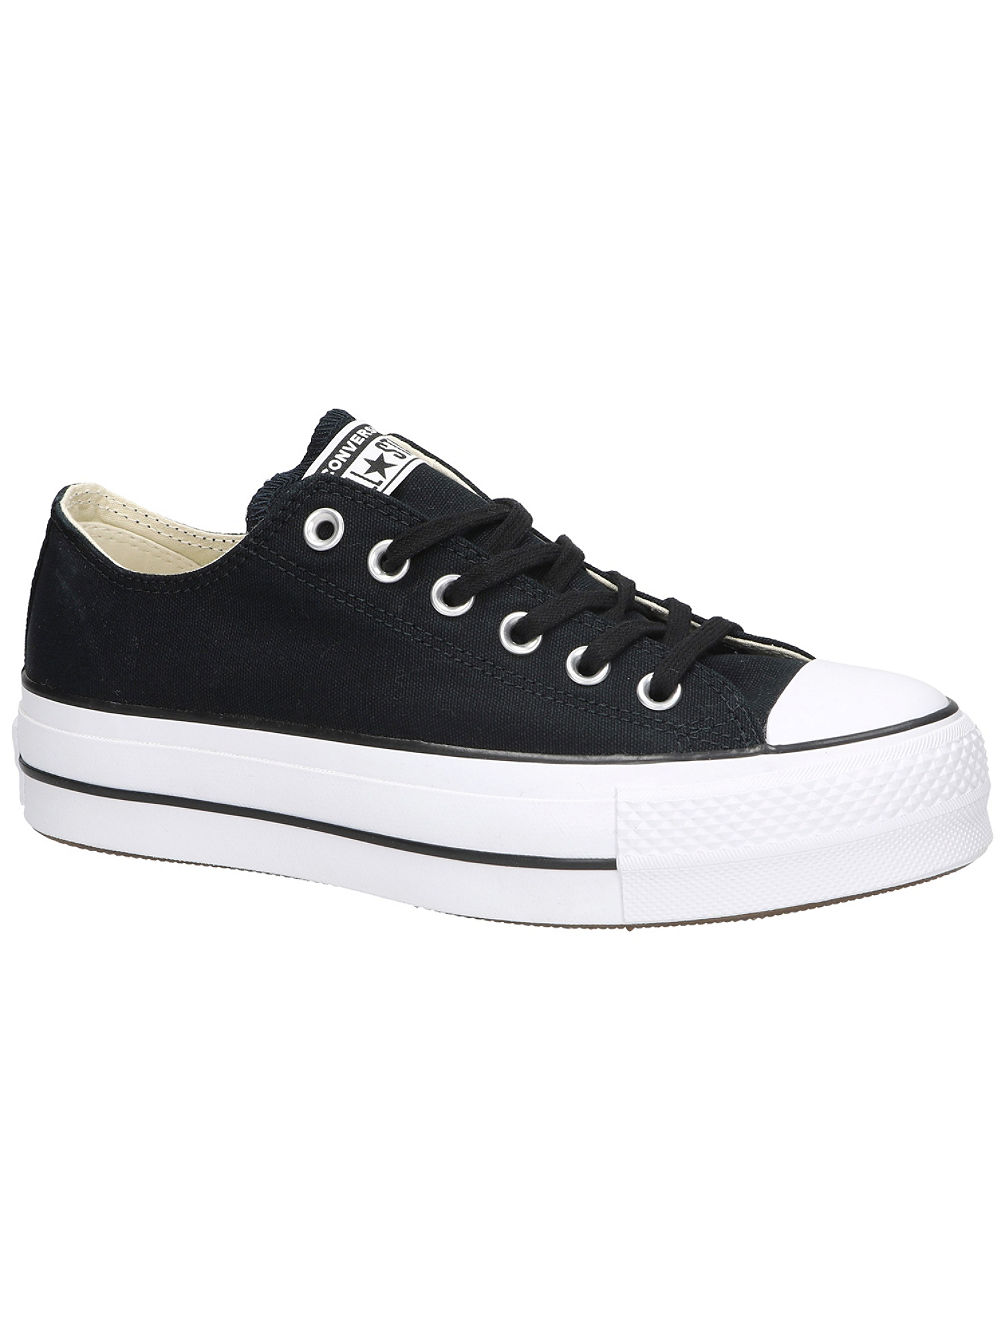 5ae2262ea6 Chuck Taylor All Star Lift Ox Sneakers